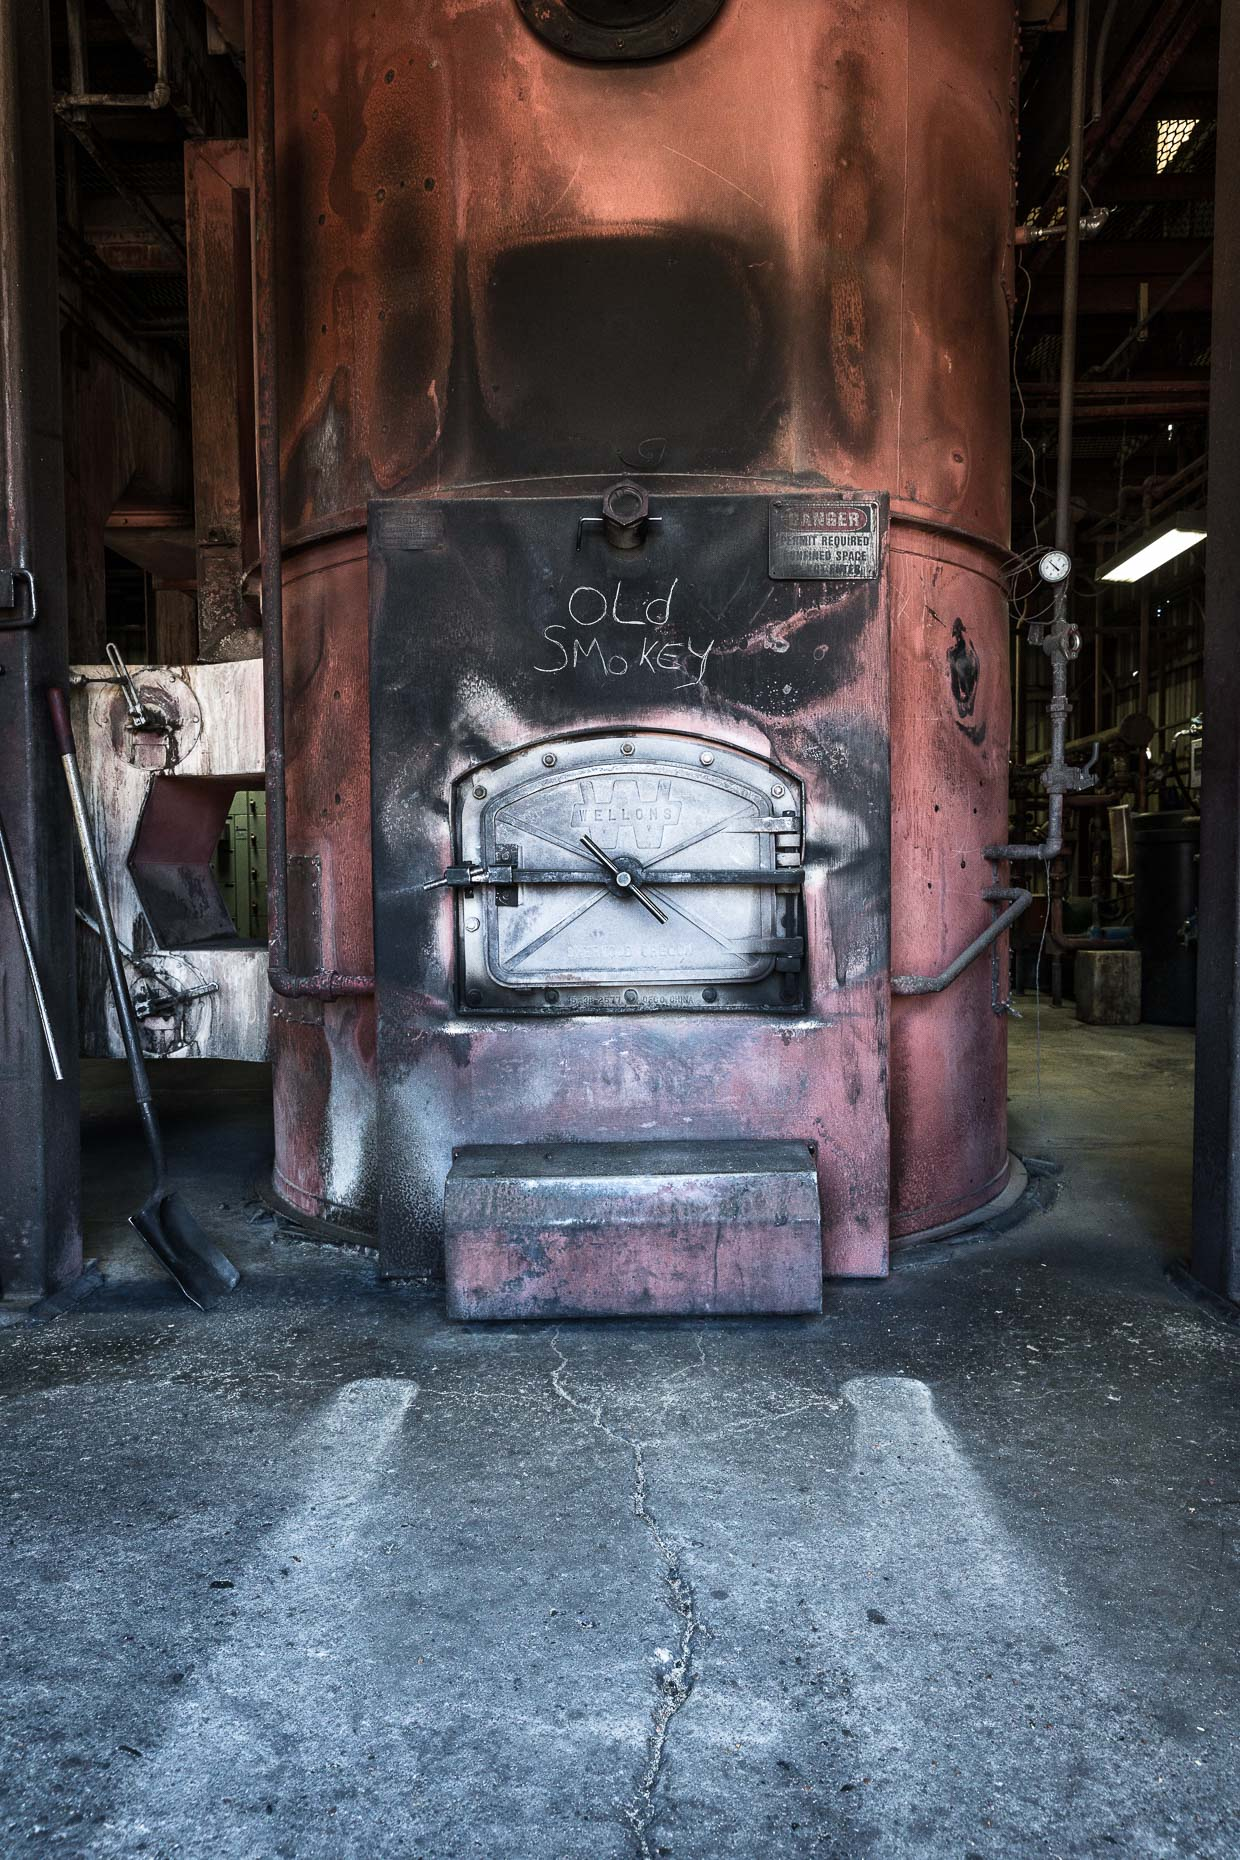 Furnace burner in factory with OLD SMOKEY written on it, Malheur Lumber Company mill in John Day, Oregon by David Zaitz.